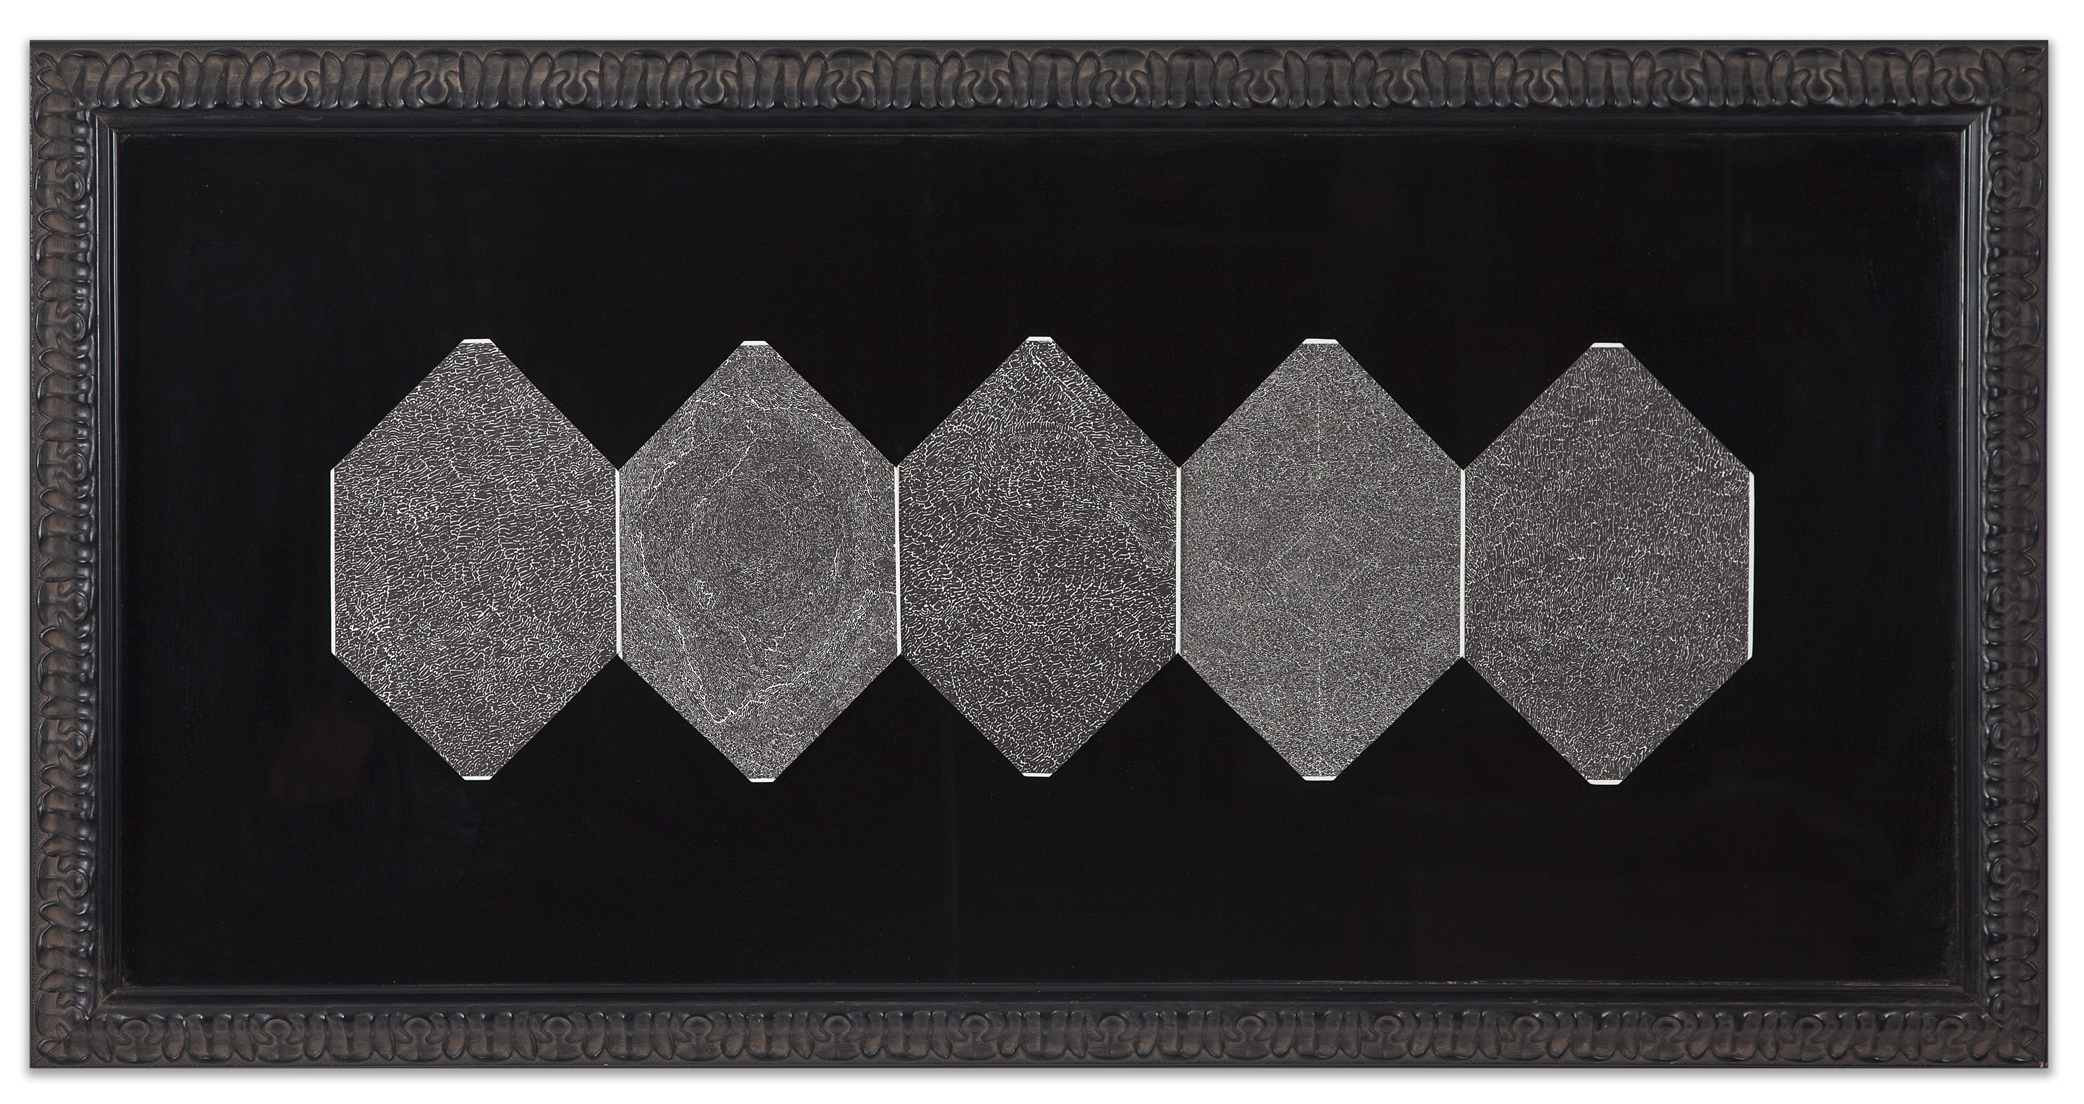 Bruce Conner, UNTITLED, c. 1970-71, Lithograph, 8 1/2 x 27 inches